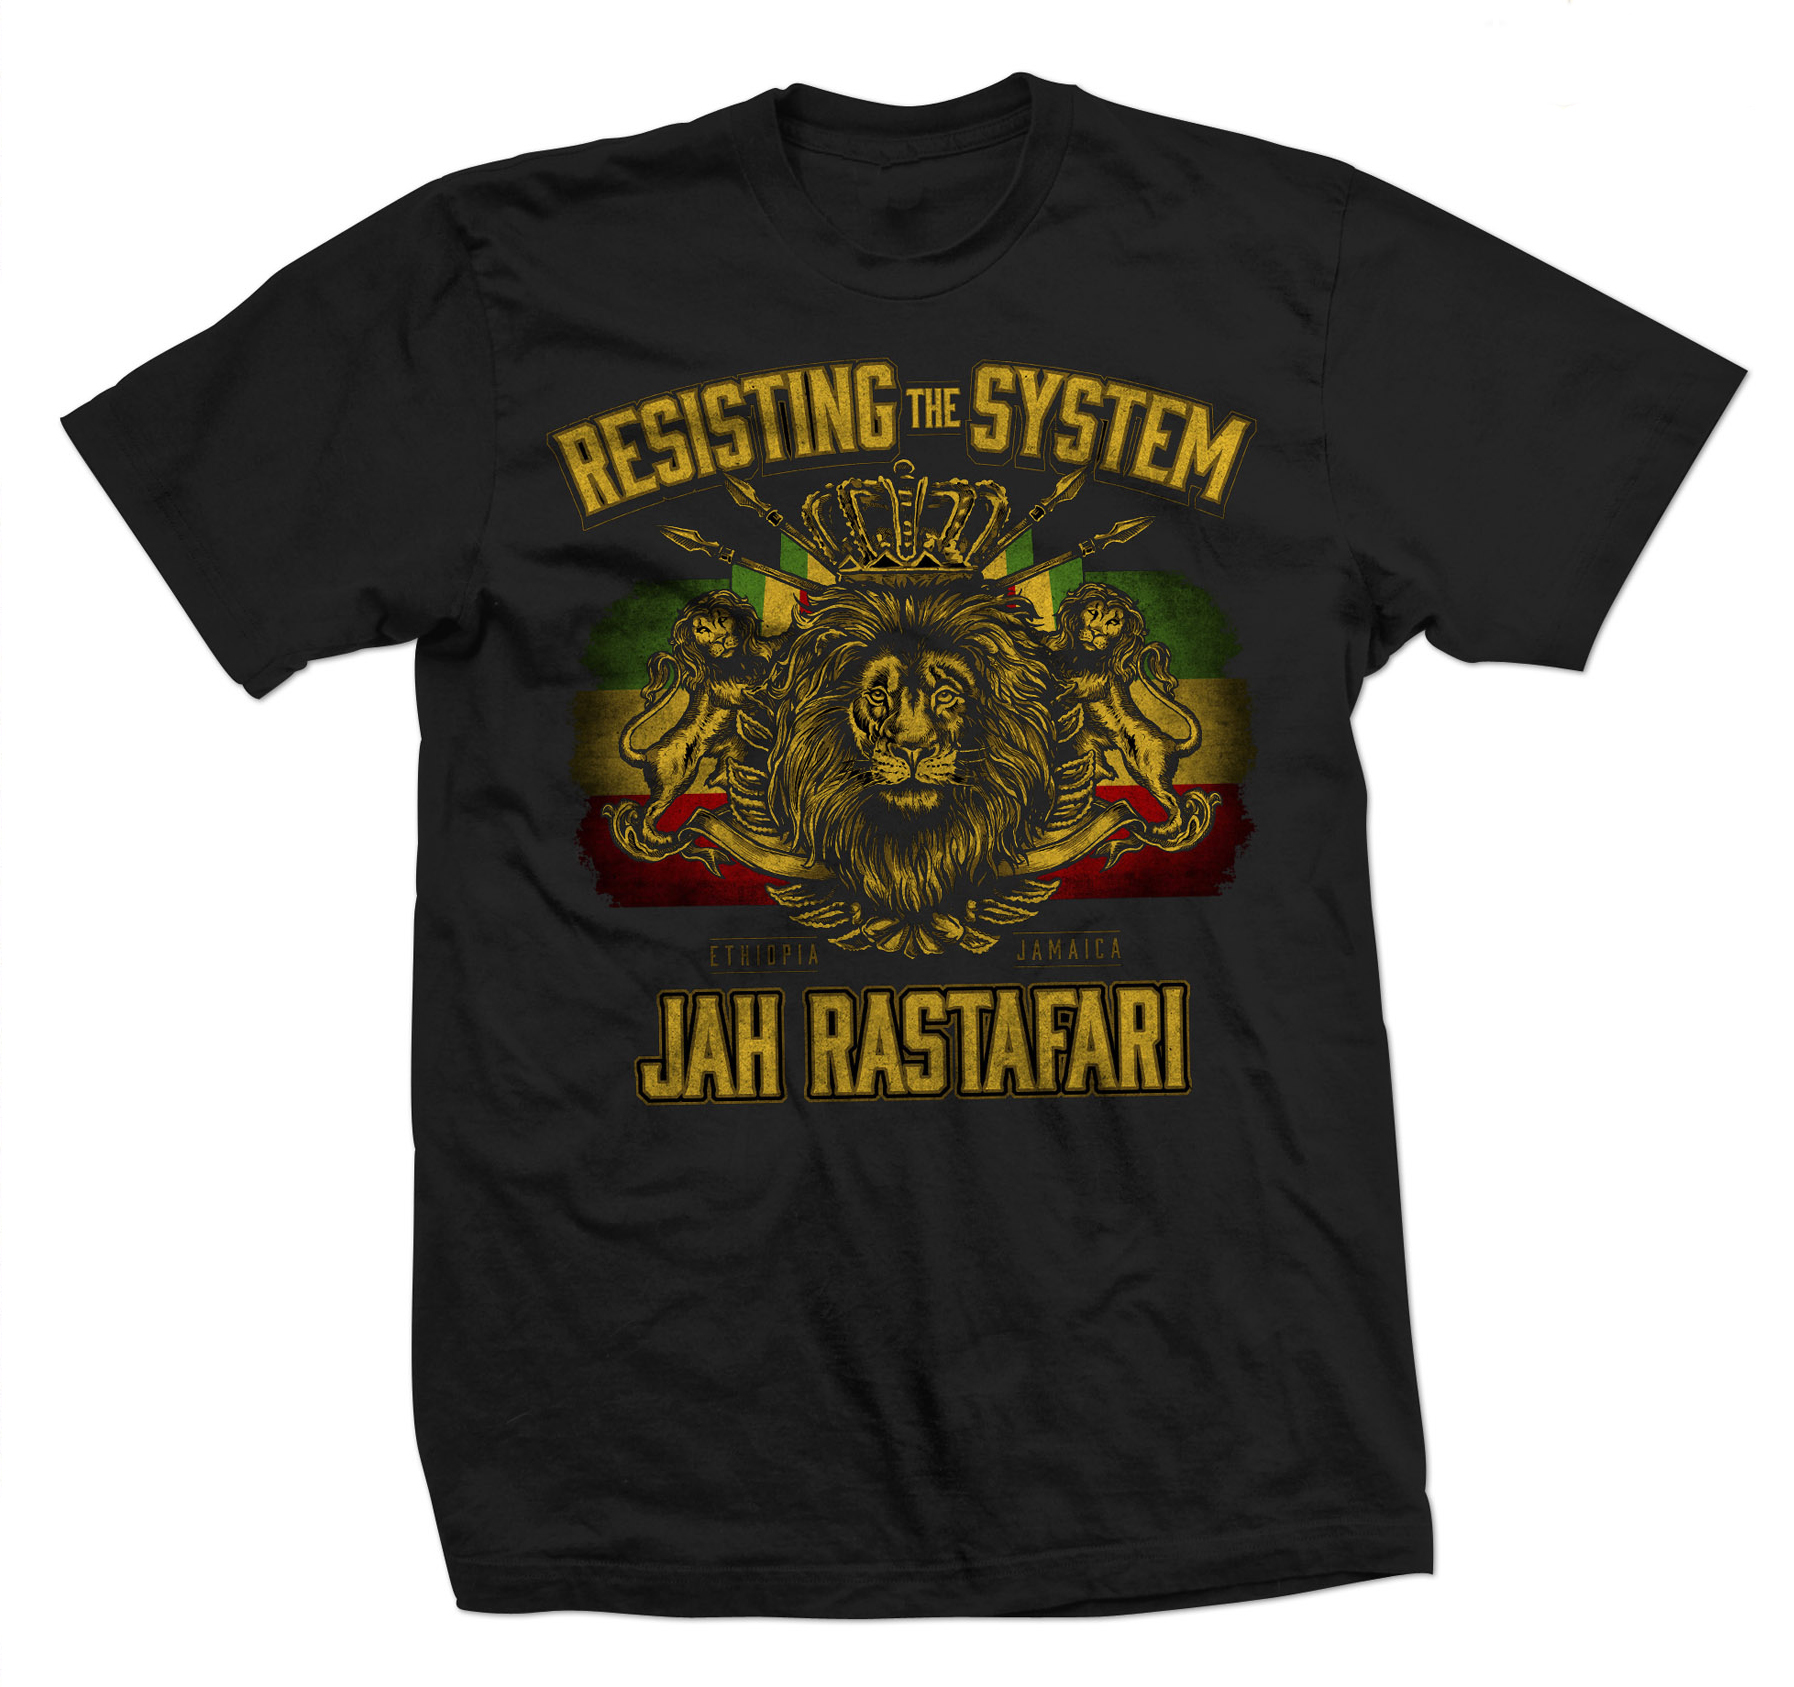 1f7b6ad9a7 Rasta Wear & Rasta Clothing, T-Shirts & Merchandise | RastaEmpire.com